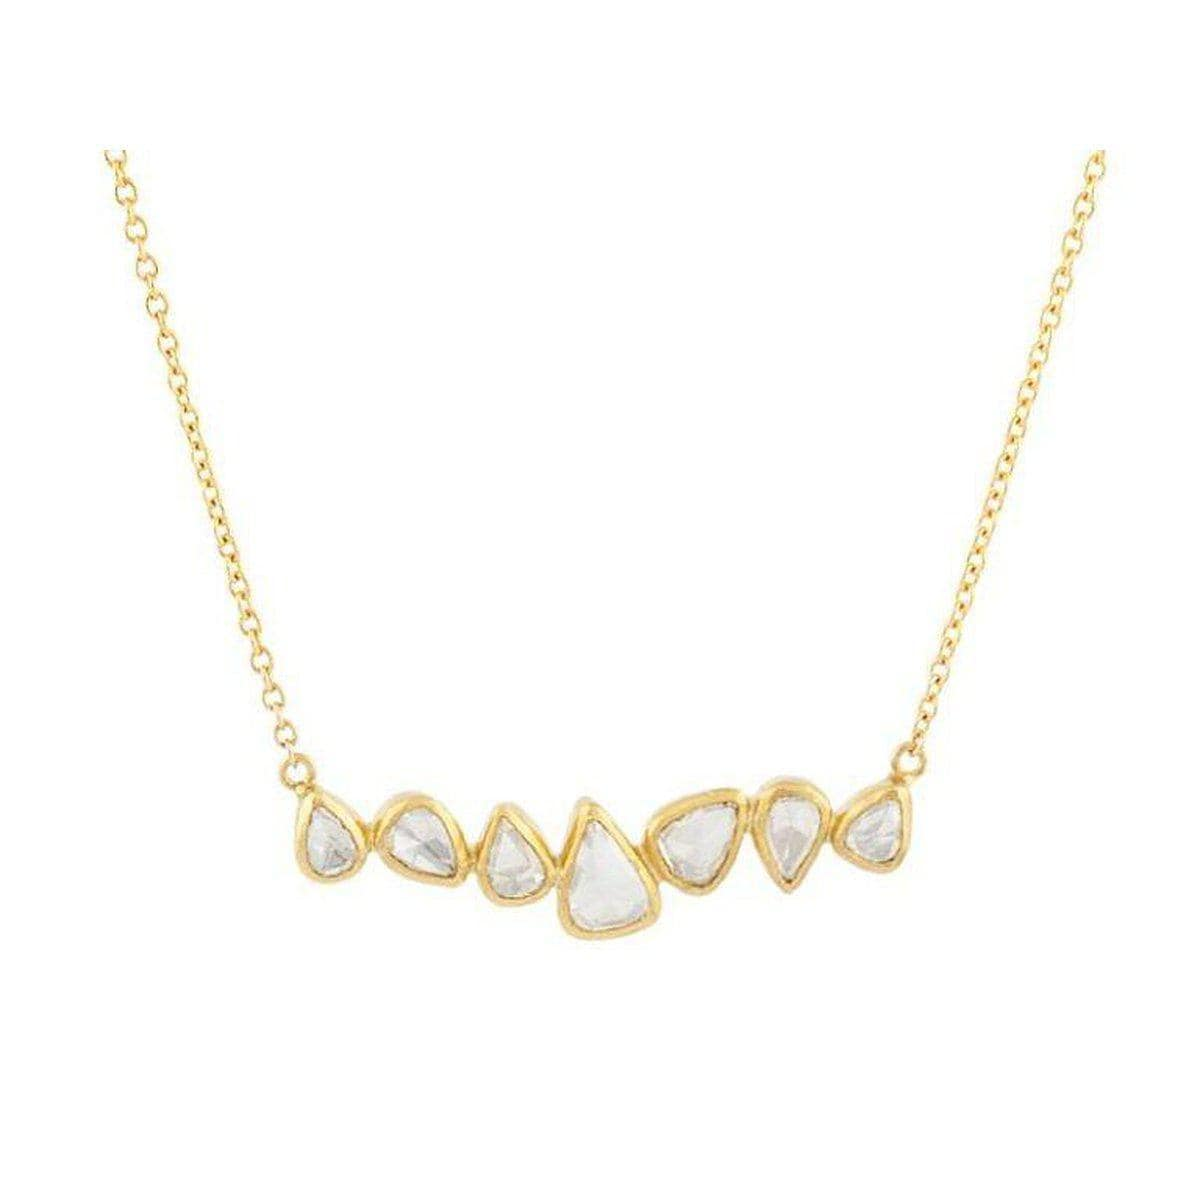 Elements 24K Gold Diamond Necklace - N-U21775-DI-GURHAN-Renee Taylor Gallery